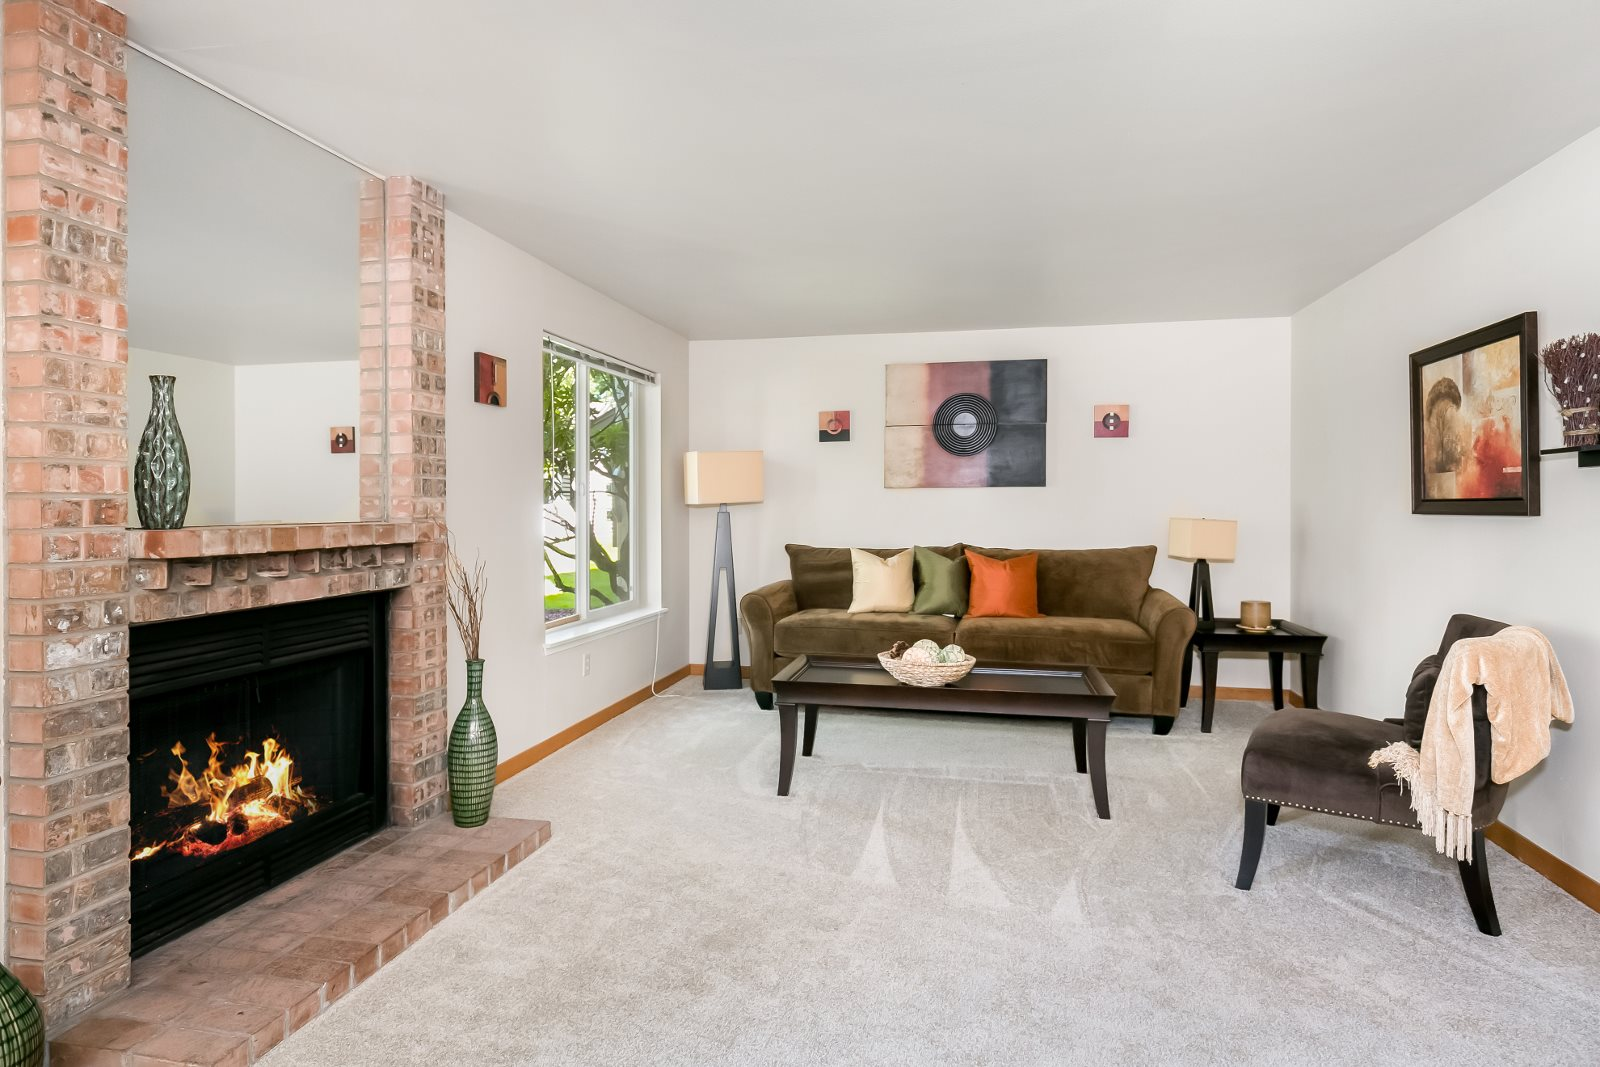 Wood burning fireplaces in spacious one, two, and three bedroom floor plans